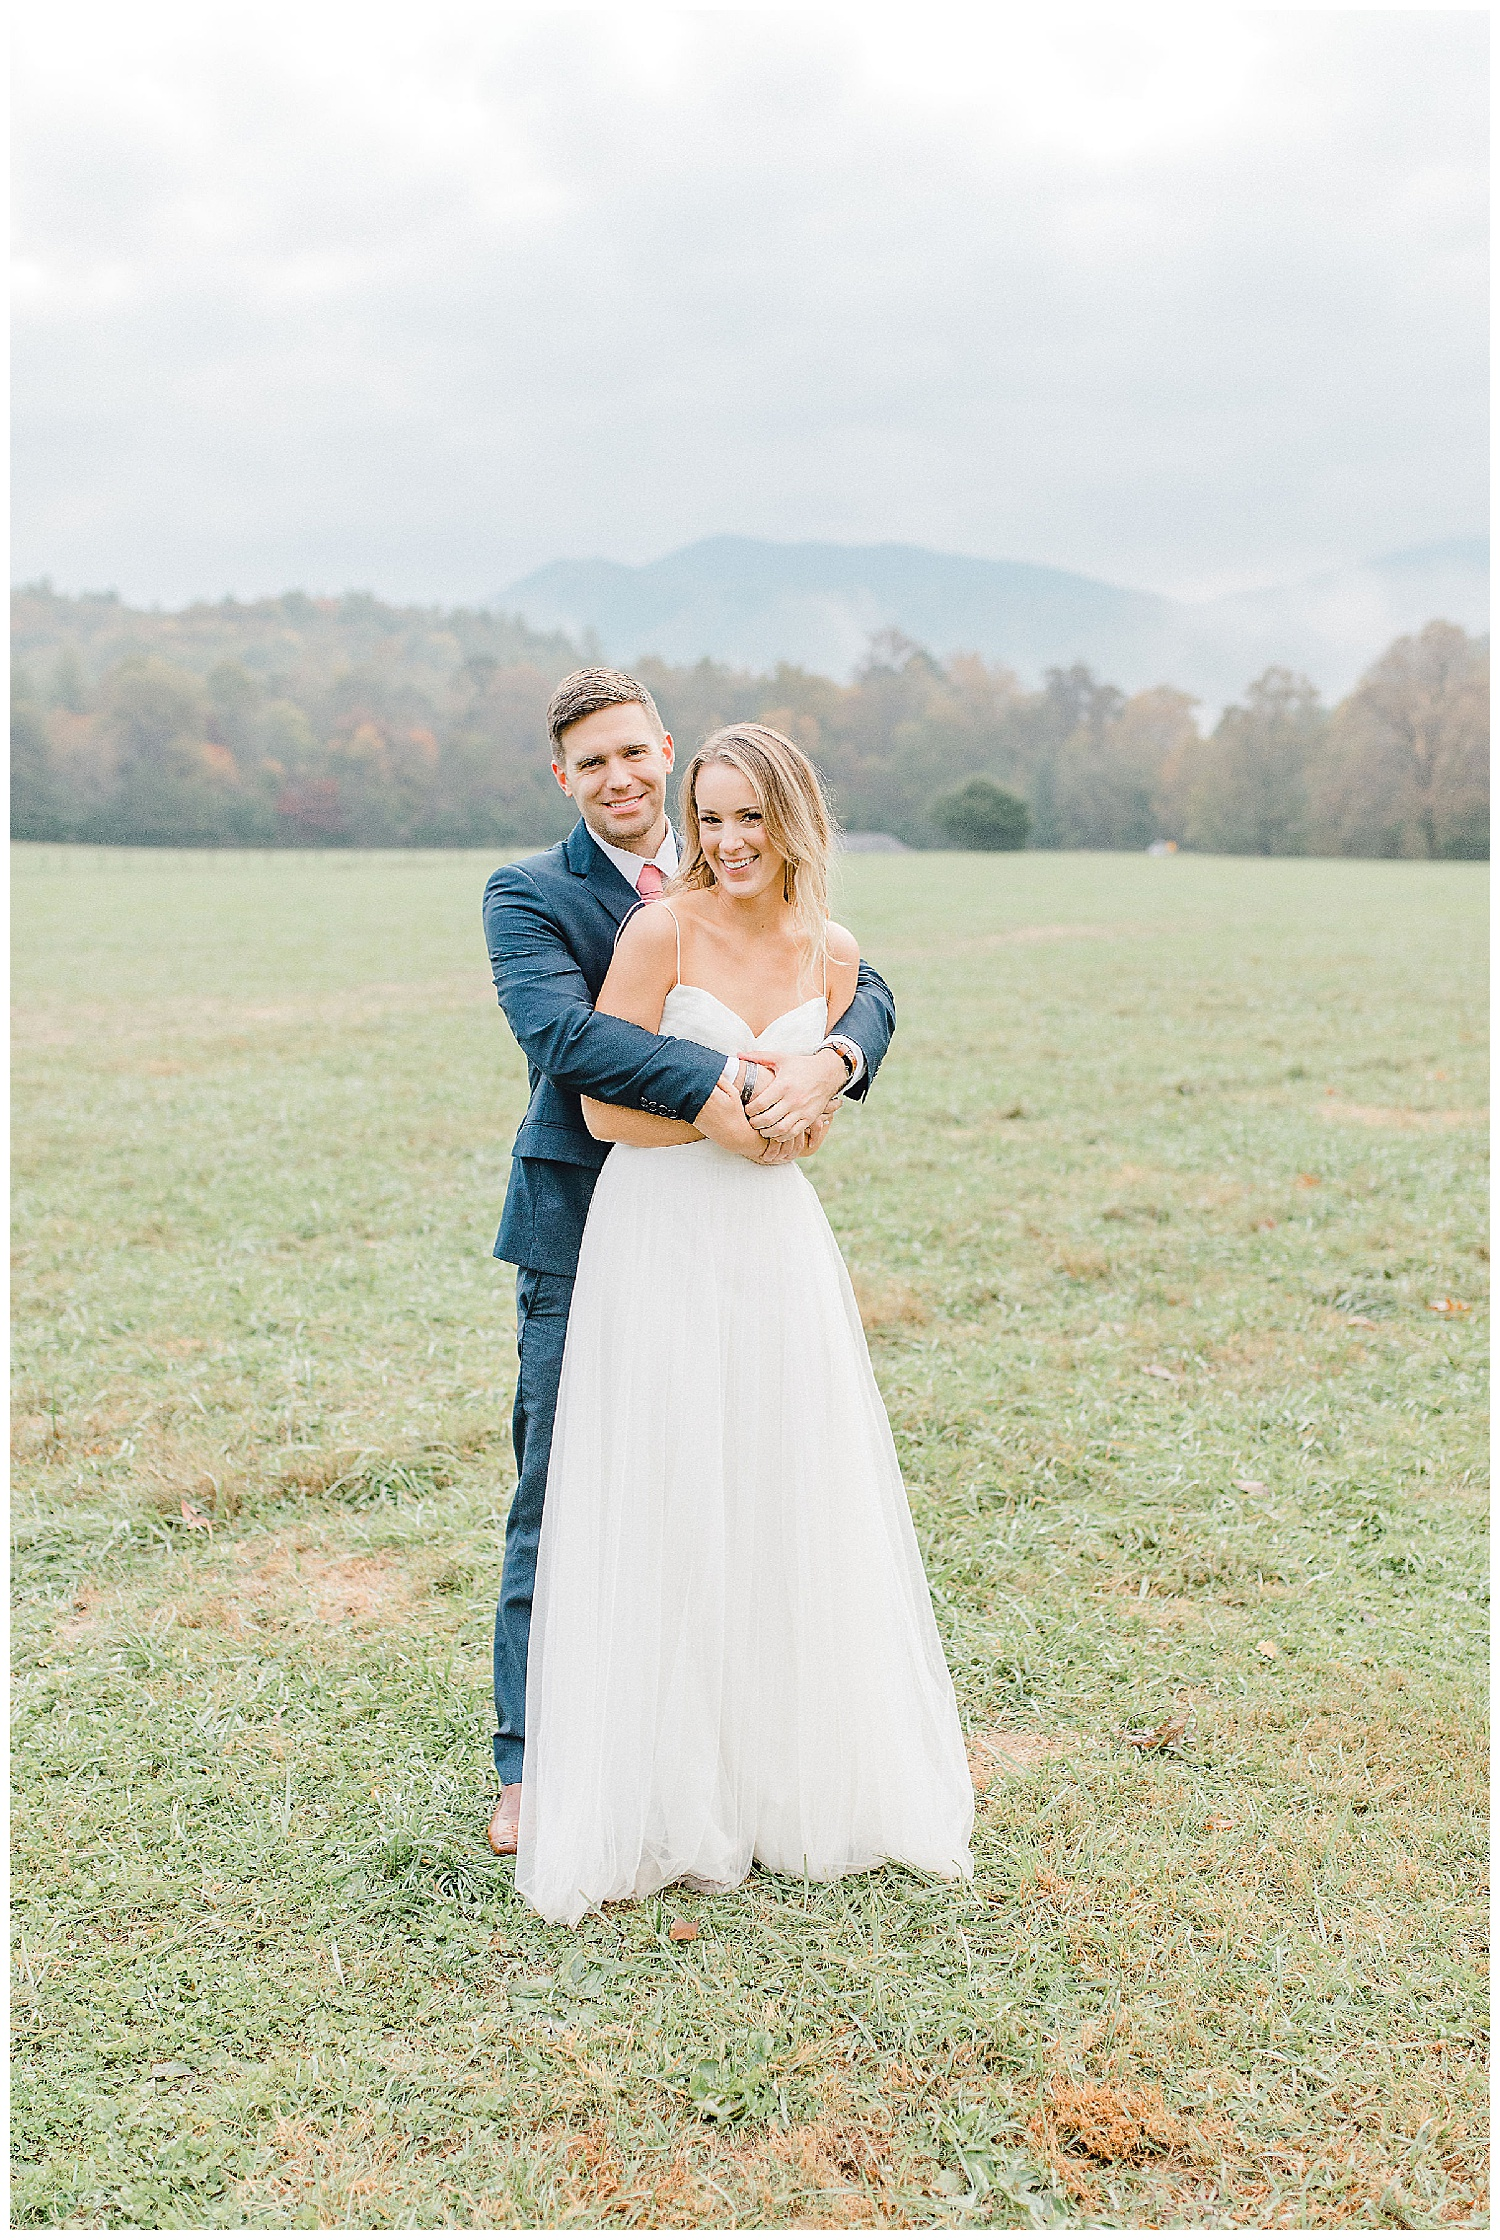 Emma Rose Company recently got to travel all the way to Nashville to photograph the most beautiful post-wedding bride and groom portraits in the Great Smoky Mountains with a gorgeous couple! Nashville wedding inspiration at it's finest._0030.jpg